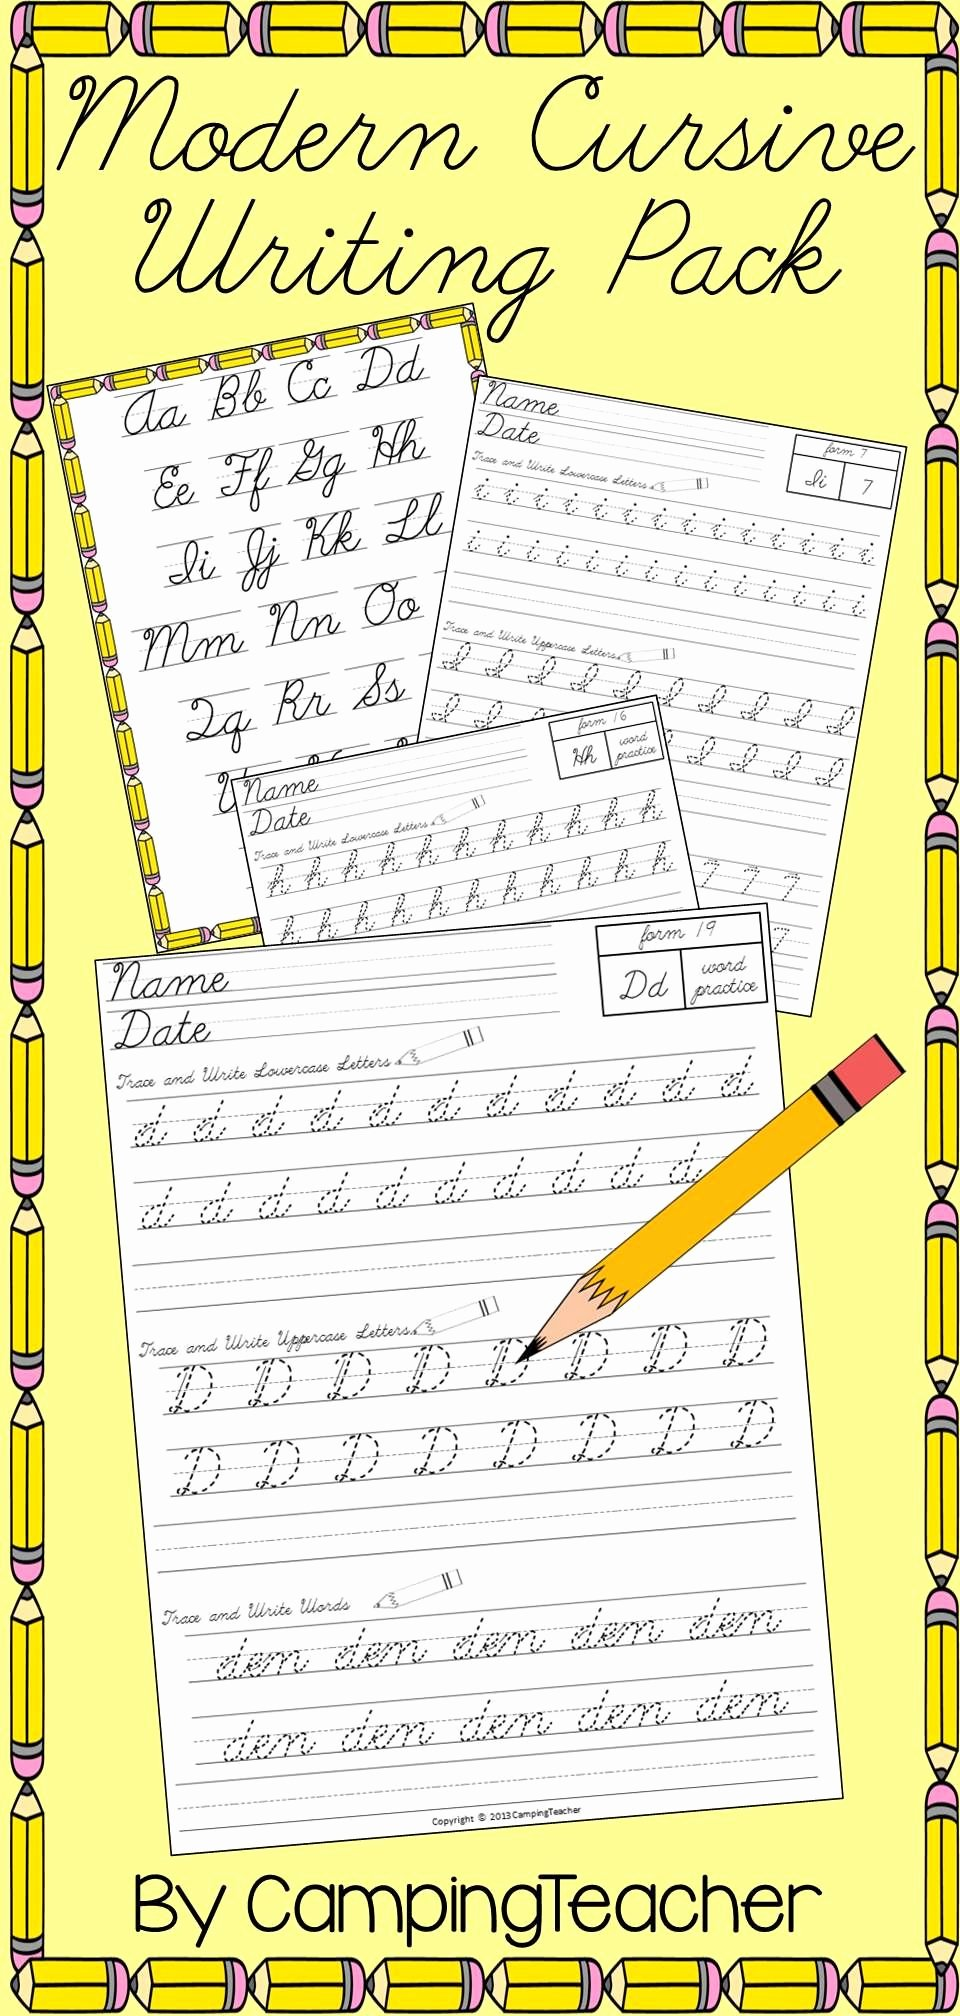 Cursive Handwriting Practice Awesome Modern Cursive Writing Pack Handwriting Practice D